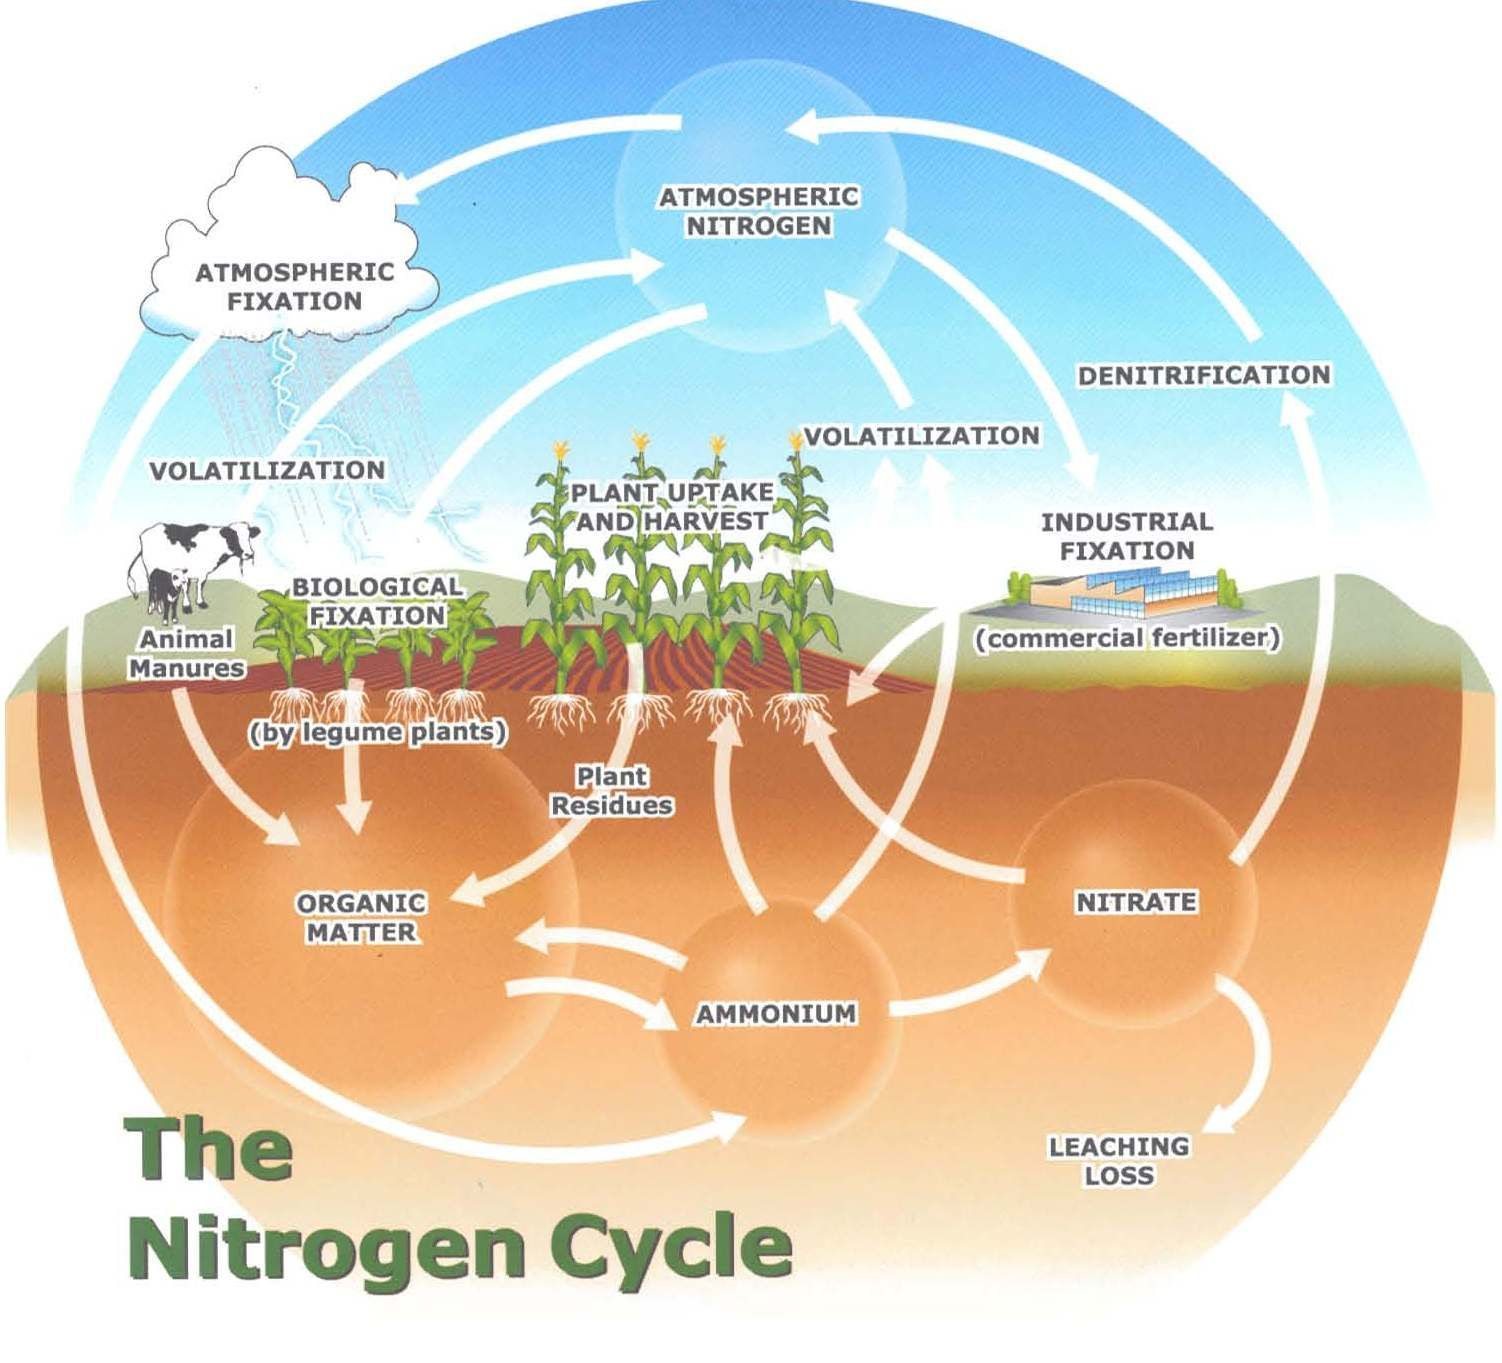 small resolution of nitrogen cycle sources of atmospheric nitrogen decay of animal plant matter sinks for atmospheric nitrogen bacteria in soil plankton